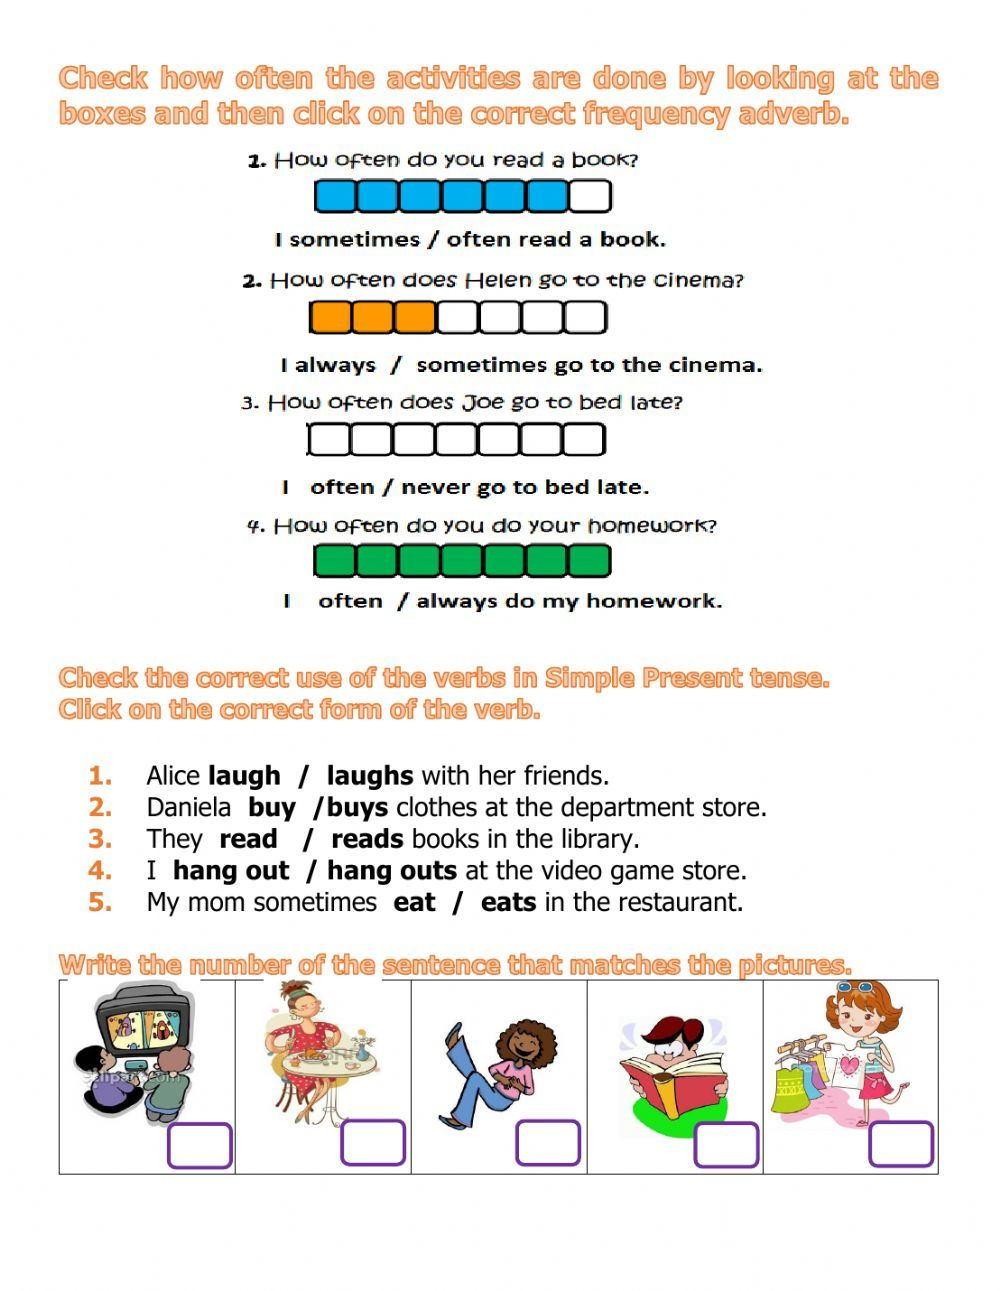 Adverbs Of Frequency Interactive And Downloadable Worksheet You Can Do The Exerc English Worksheets For Kids Adverbs Lesson Reading Comprehension Kindergarten [ 1291 x 1000 Pixel ]